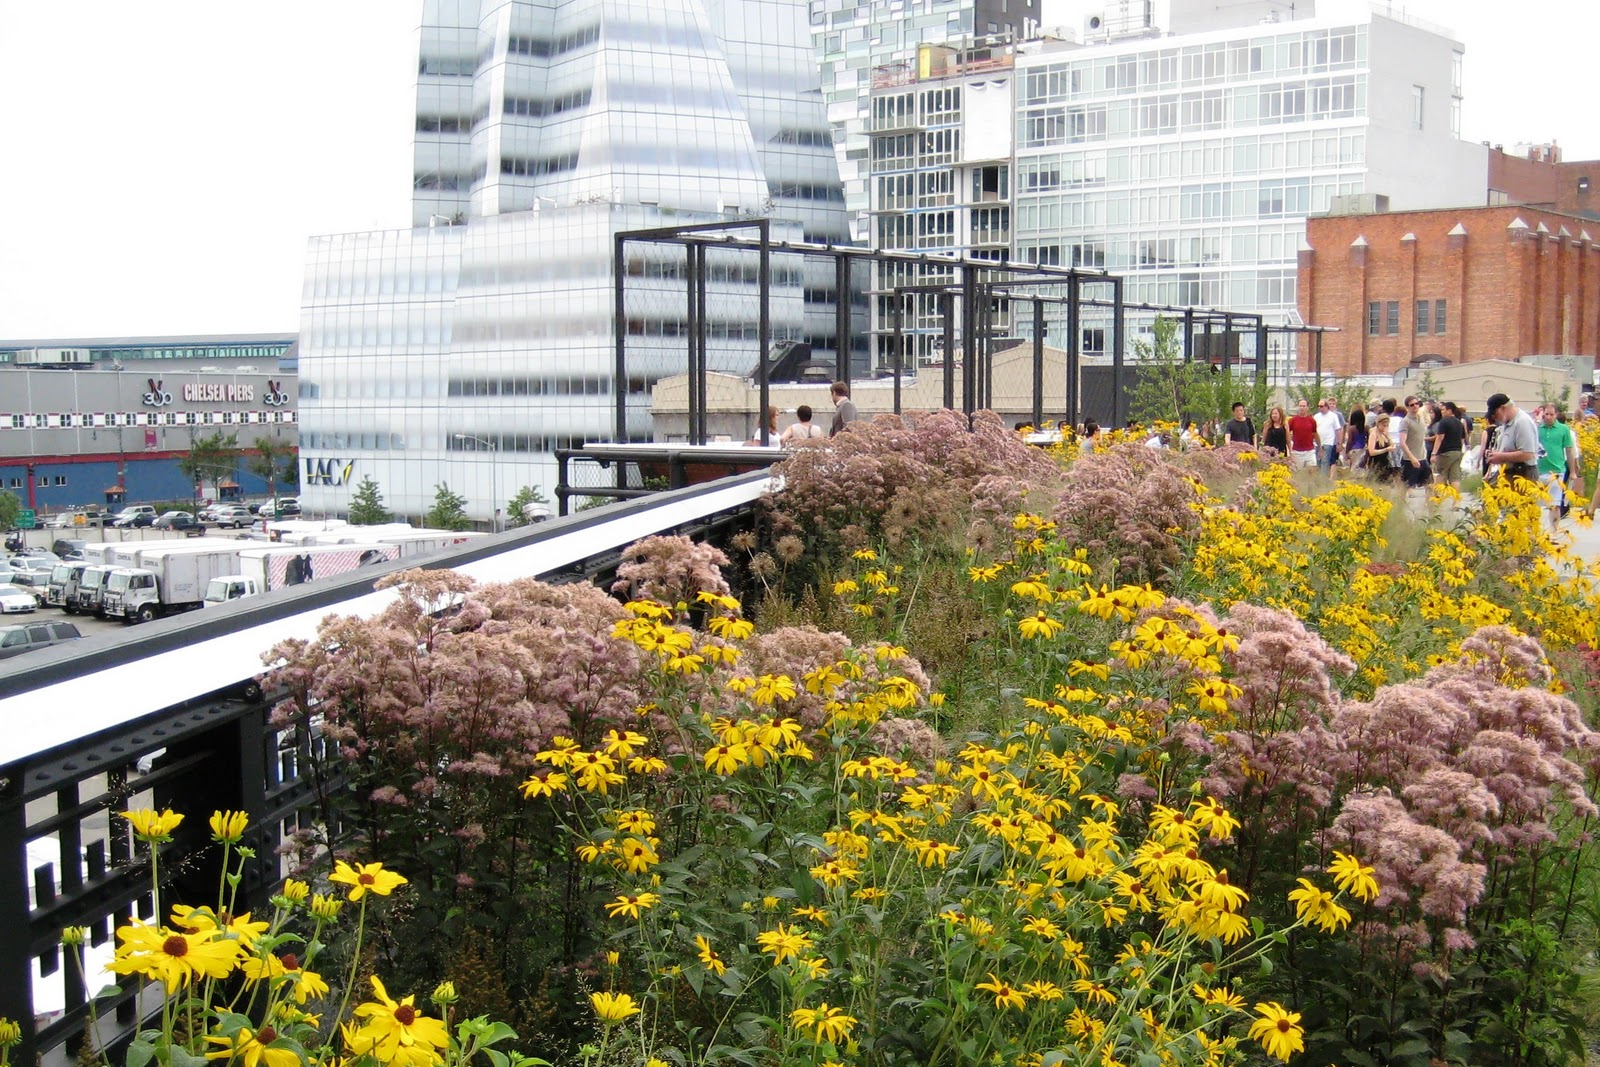 A Green Roof Is A Highly Engineered Extension Of The Roofing System That  Uses Plant Life To Meet Functional And Aesthetic Needs.